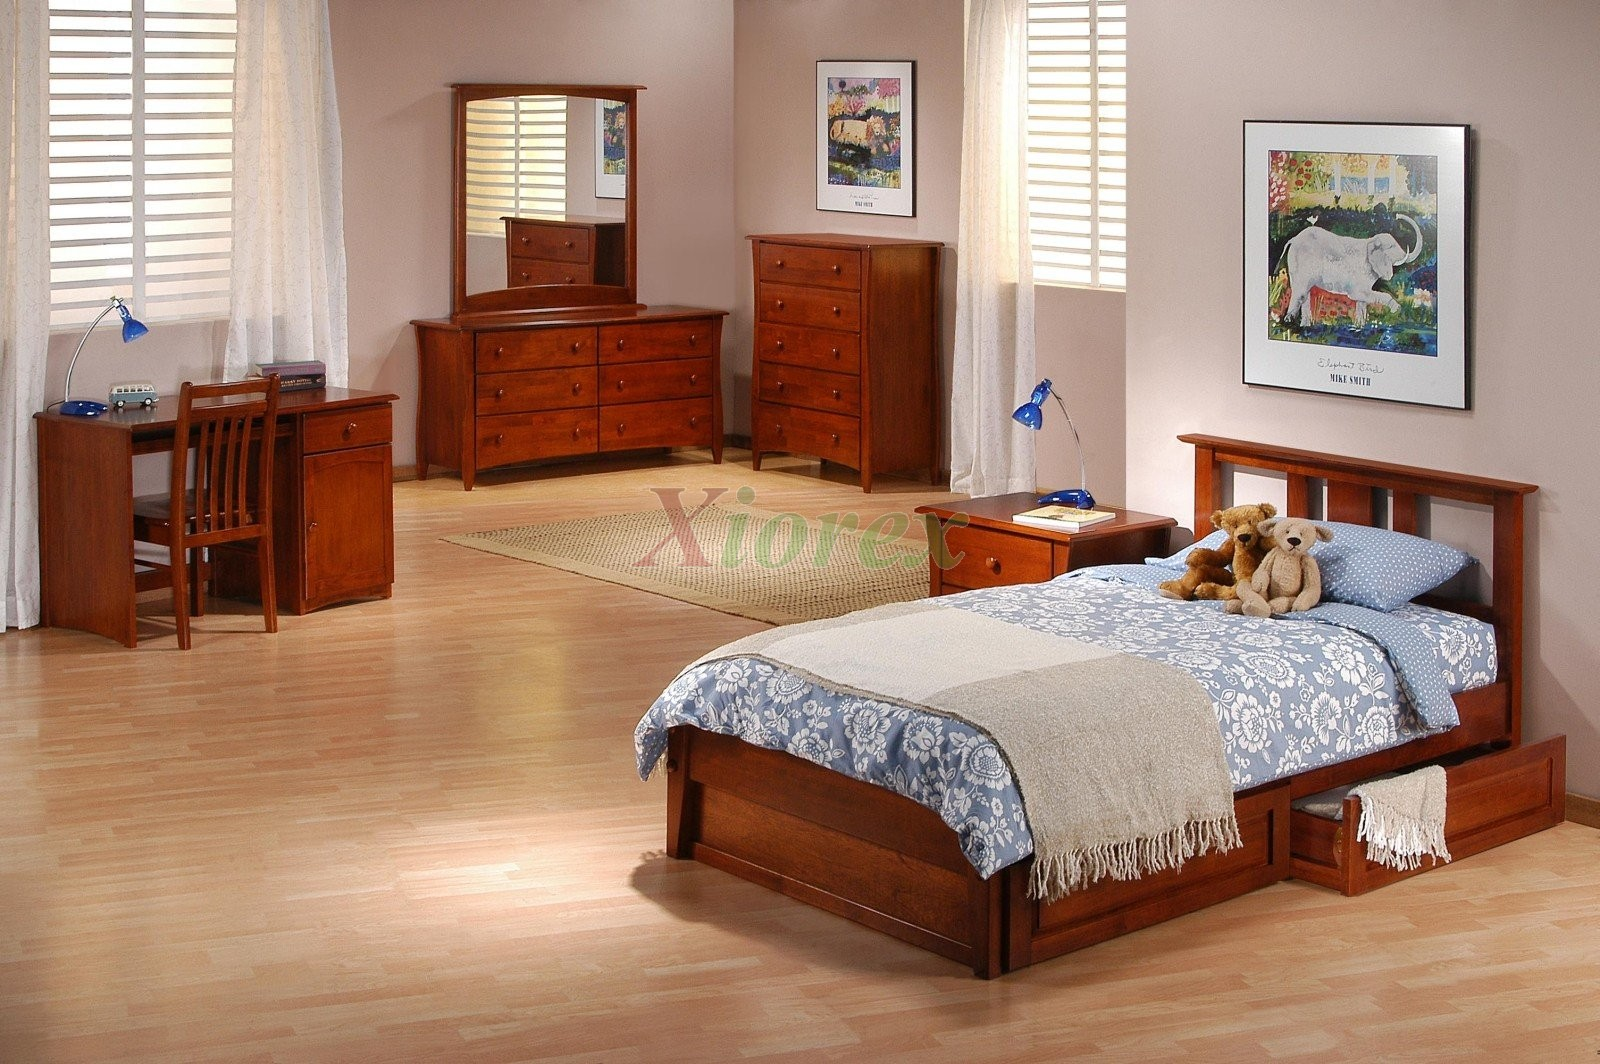 Great Wood Bed Set Night And Day Thyme Bed Set With Spices Thyme Beds | Xiorex ...